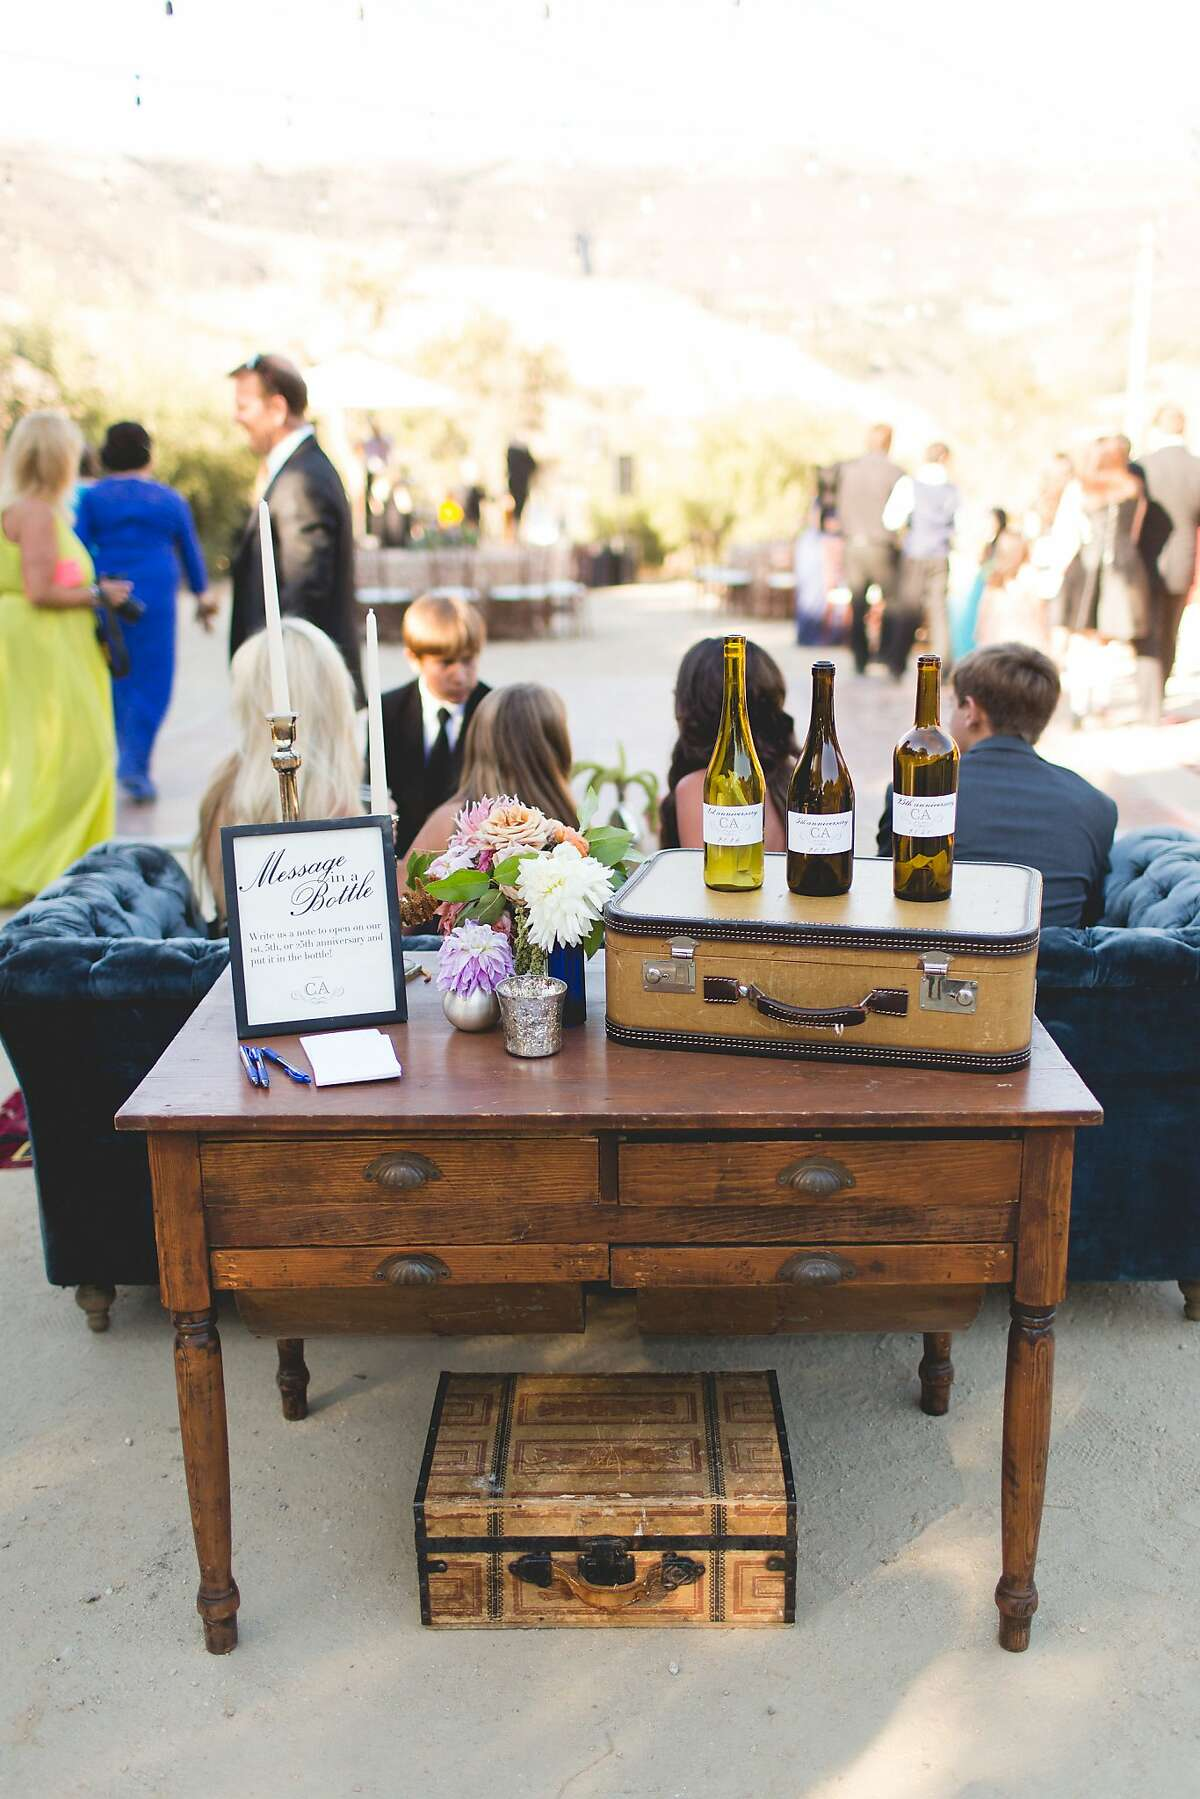 Decor brings a homey touch to the wedding of Alia Al-Sharif and Cameron McDonald at Hilltop Ranch estate at Cima Collina Winery in Carmel.